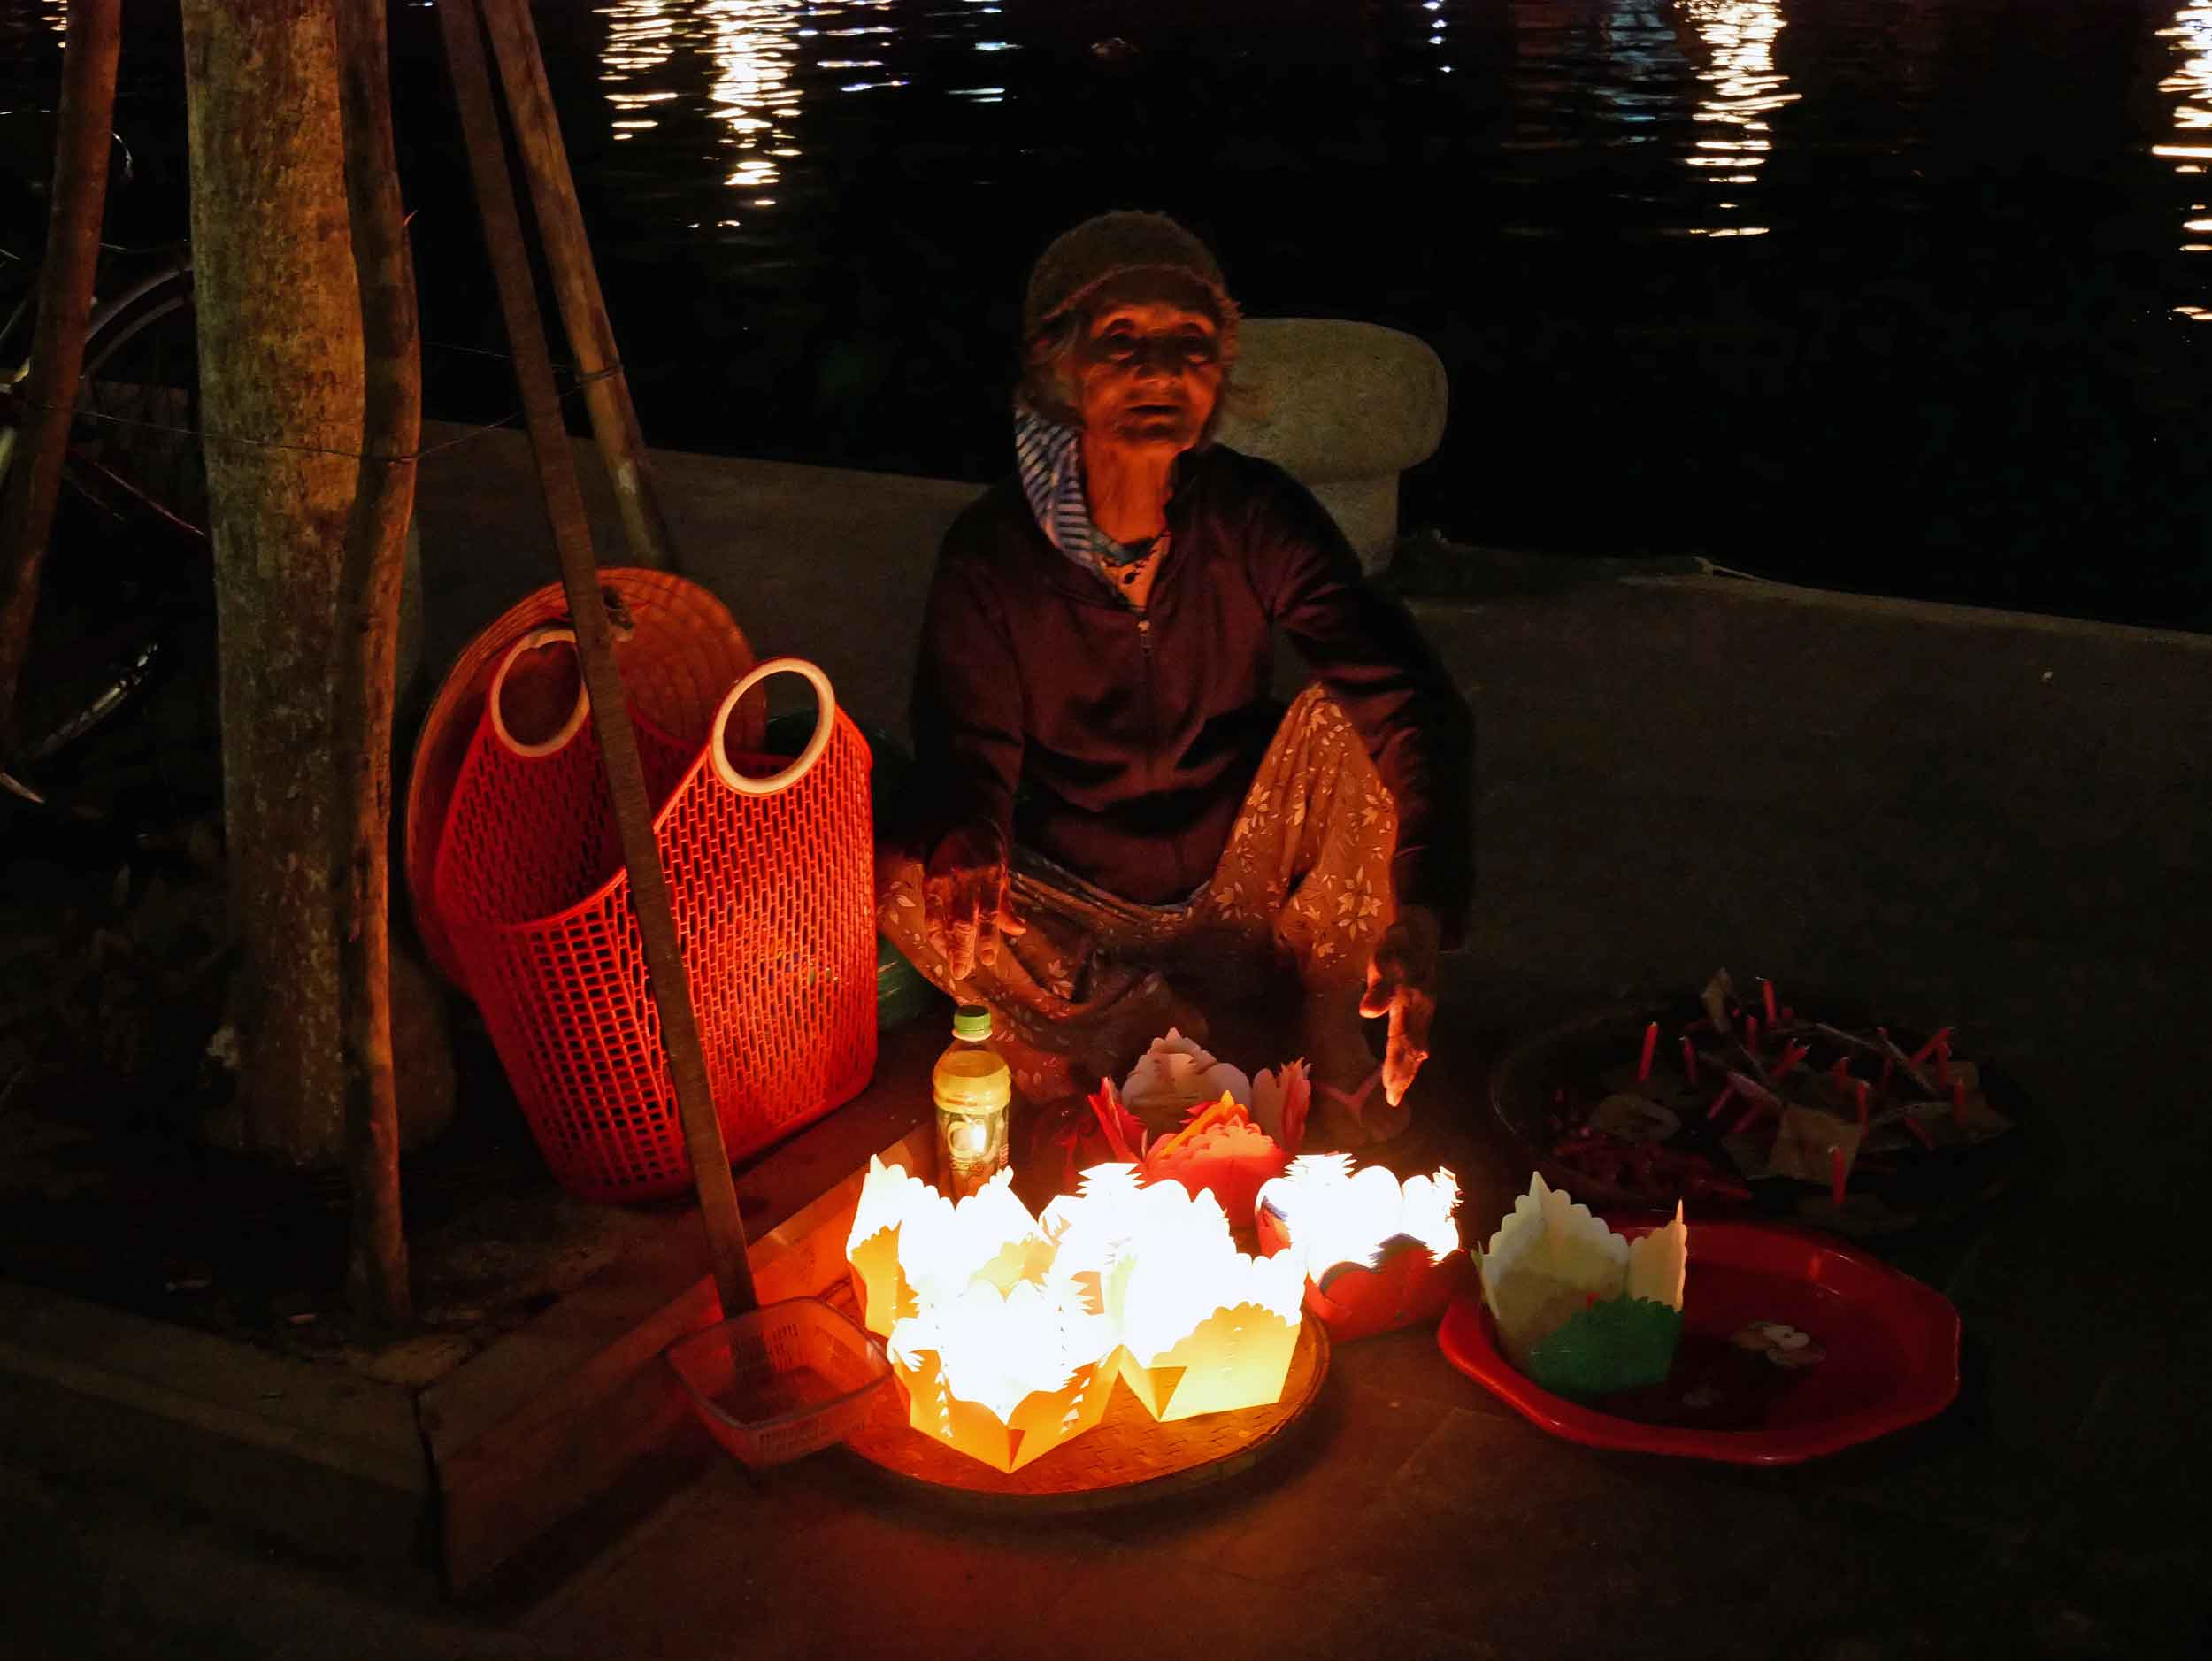 A beautiful candle seller along the banks of the Thu Bon River.